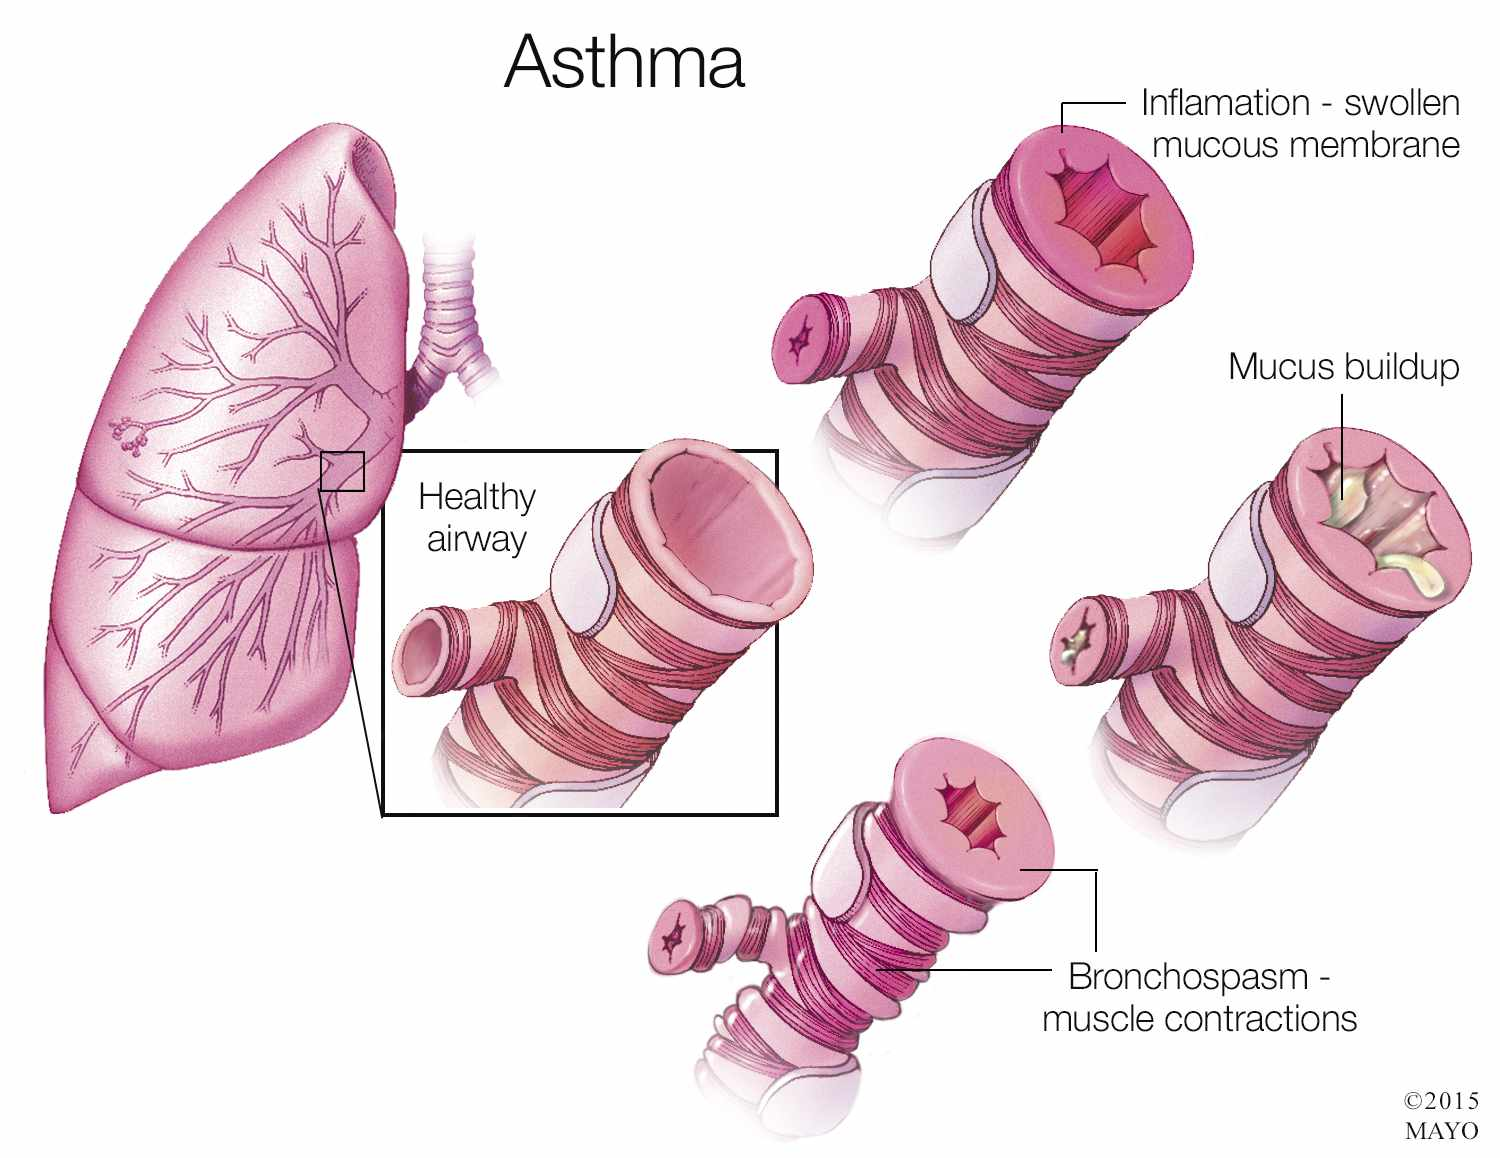 a medical illustration of the effects of asthma with inflamation and mucus